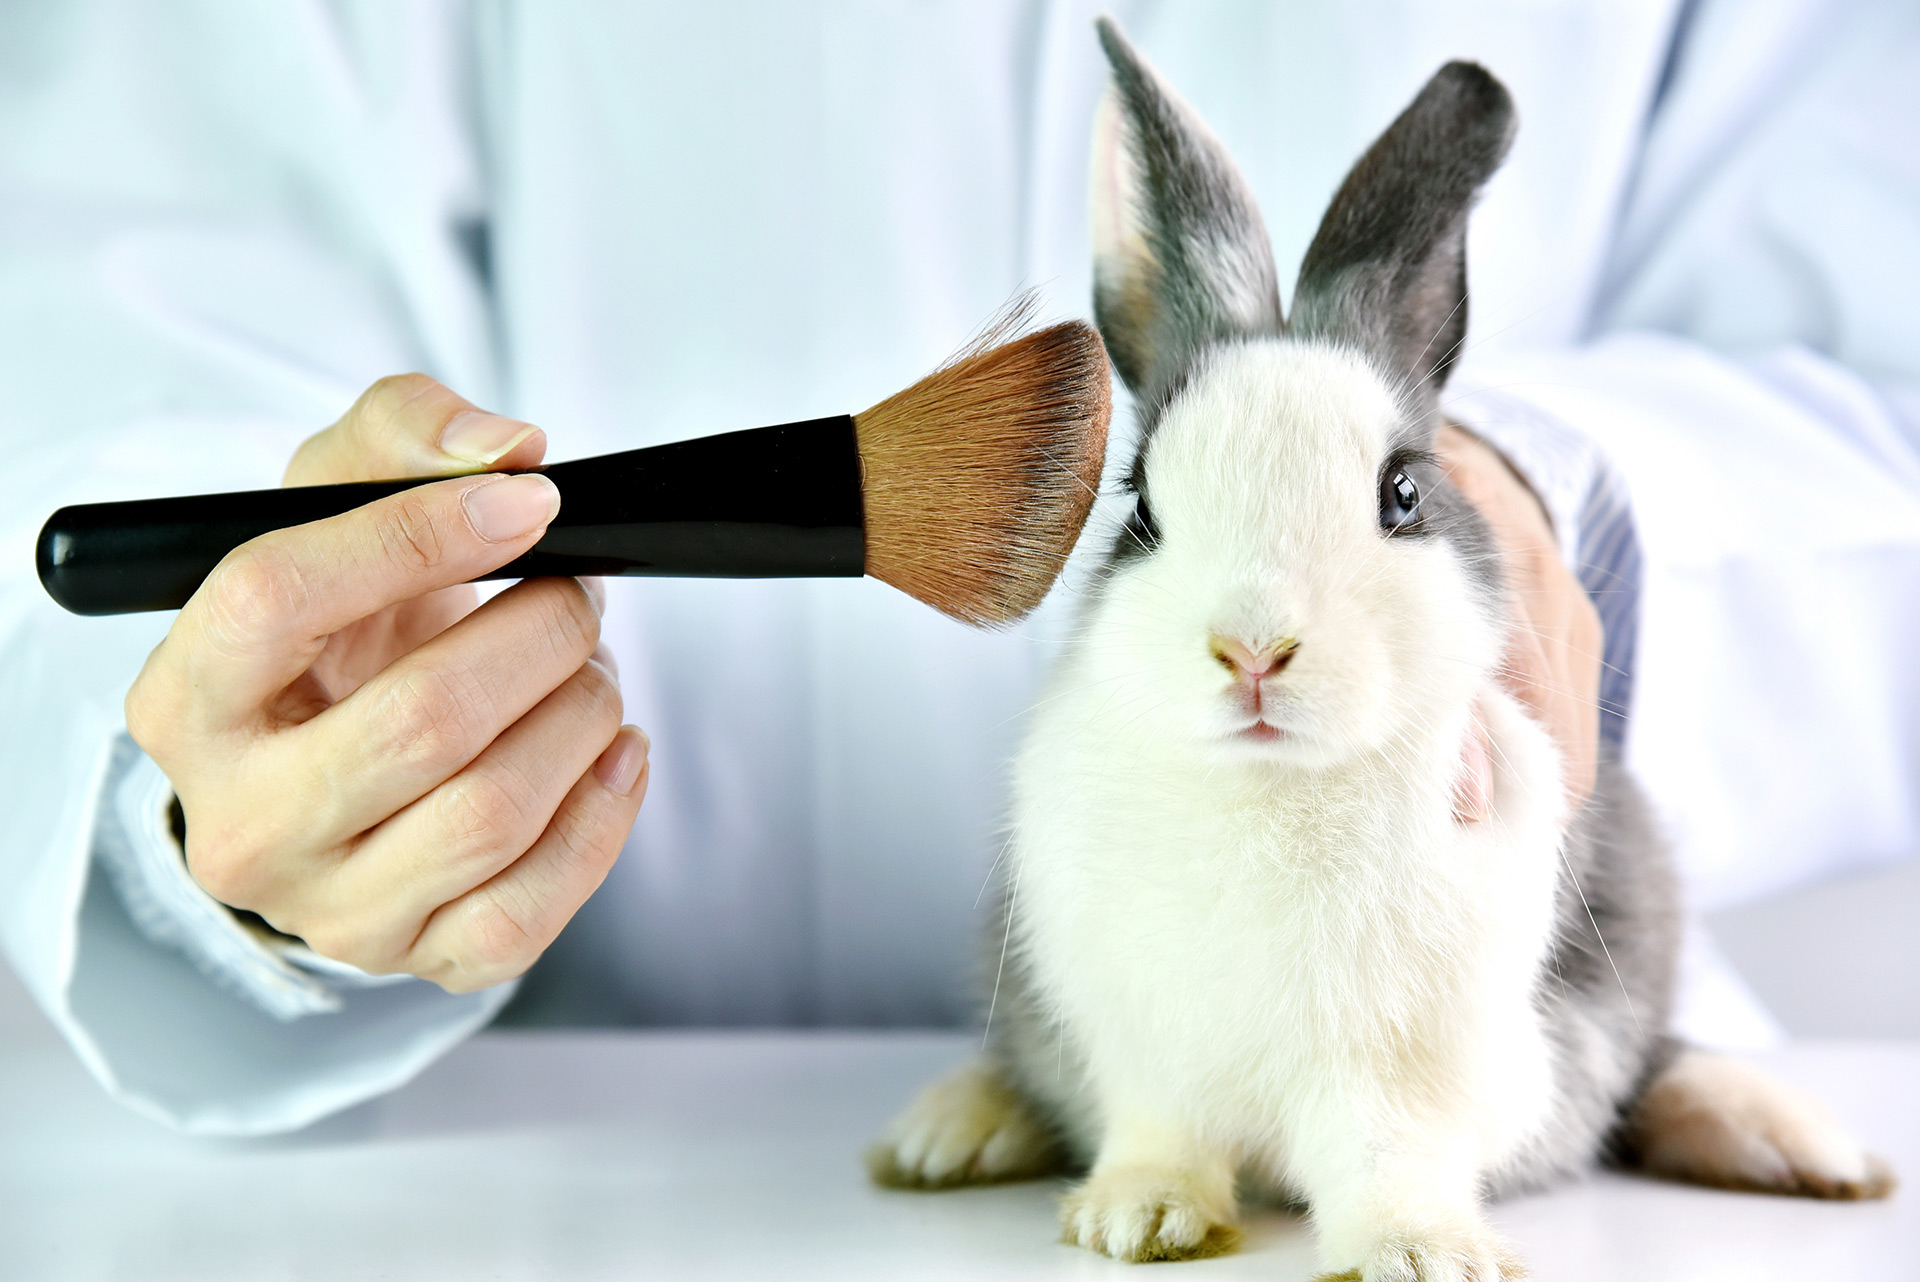 CHOOSE COSMETICS THAT ARE NOT TESTED ON ANIMALS – Centaurus ...